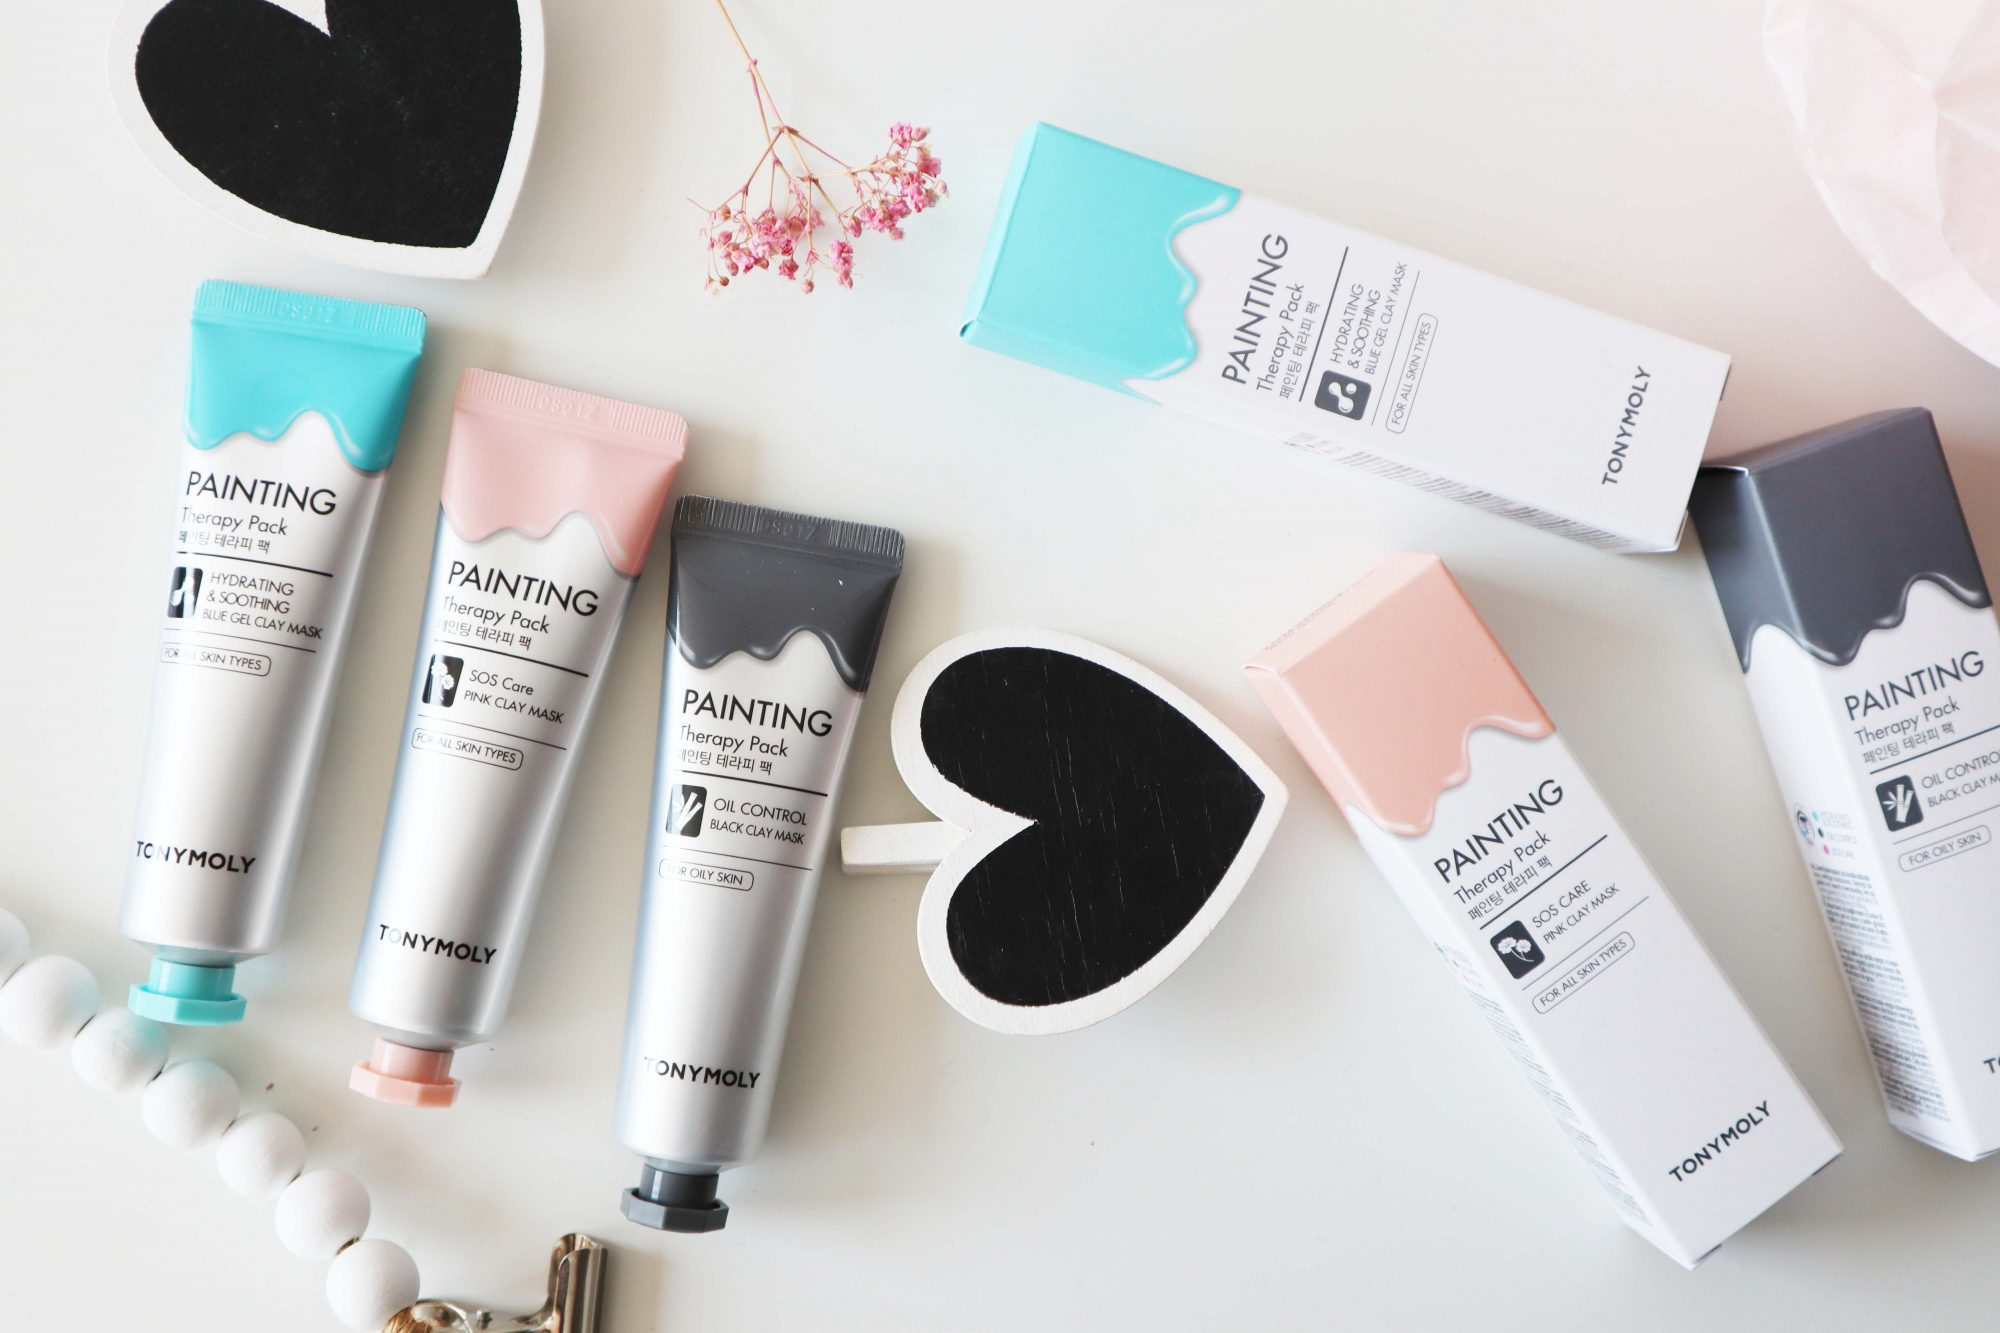 Tonymoly Painting Therapy maskers